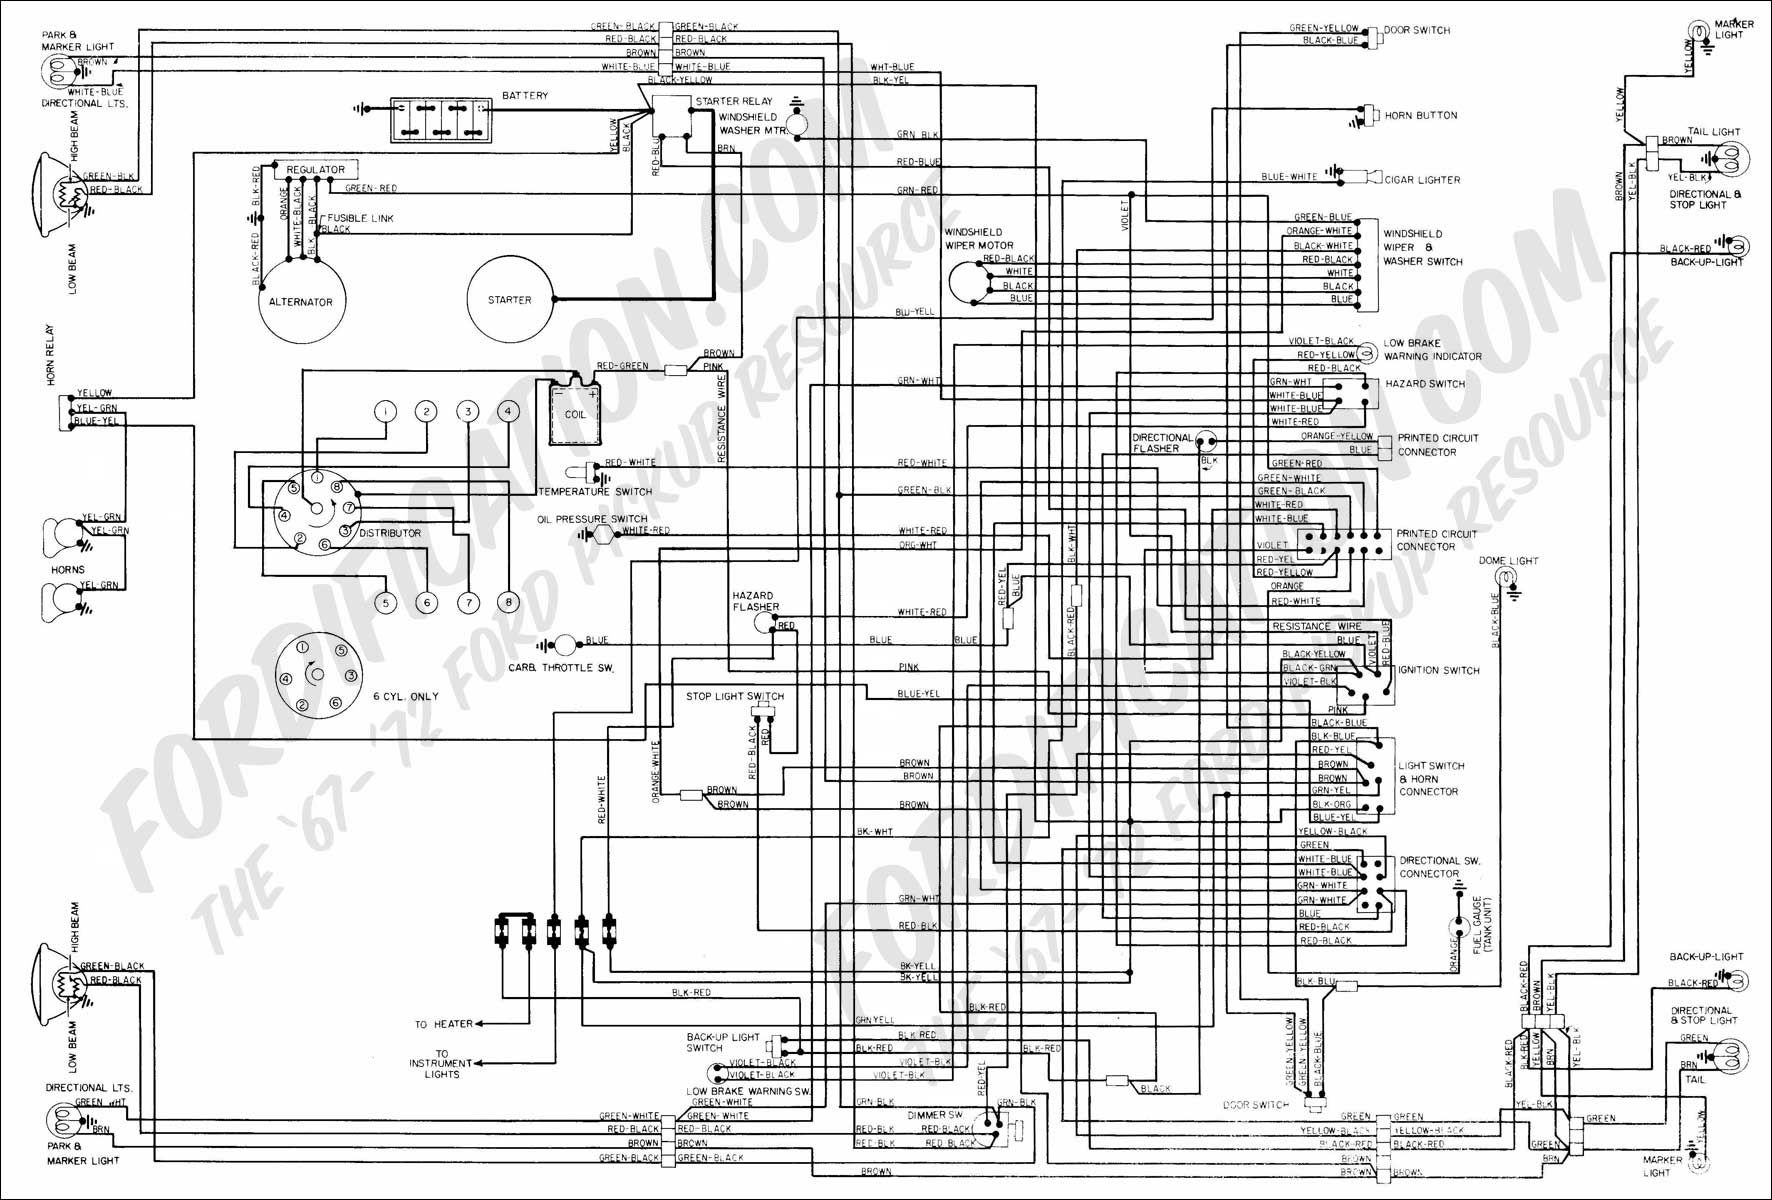 be873db495753211c2fc9a563f039b29 solenoid 1971 f250 1971 ford f100 wiring diagram www ford 1996 ford f250 wiring diagram at readyjetset.co